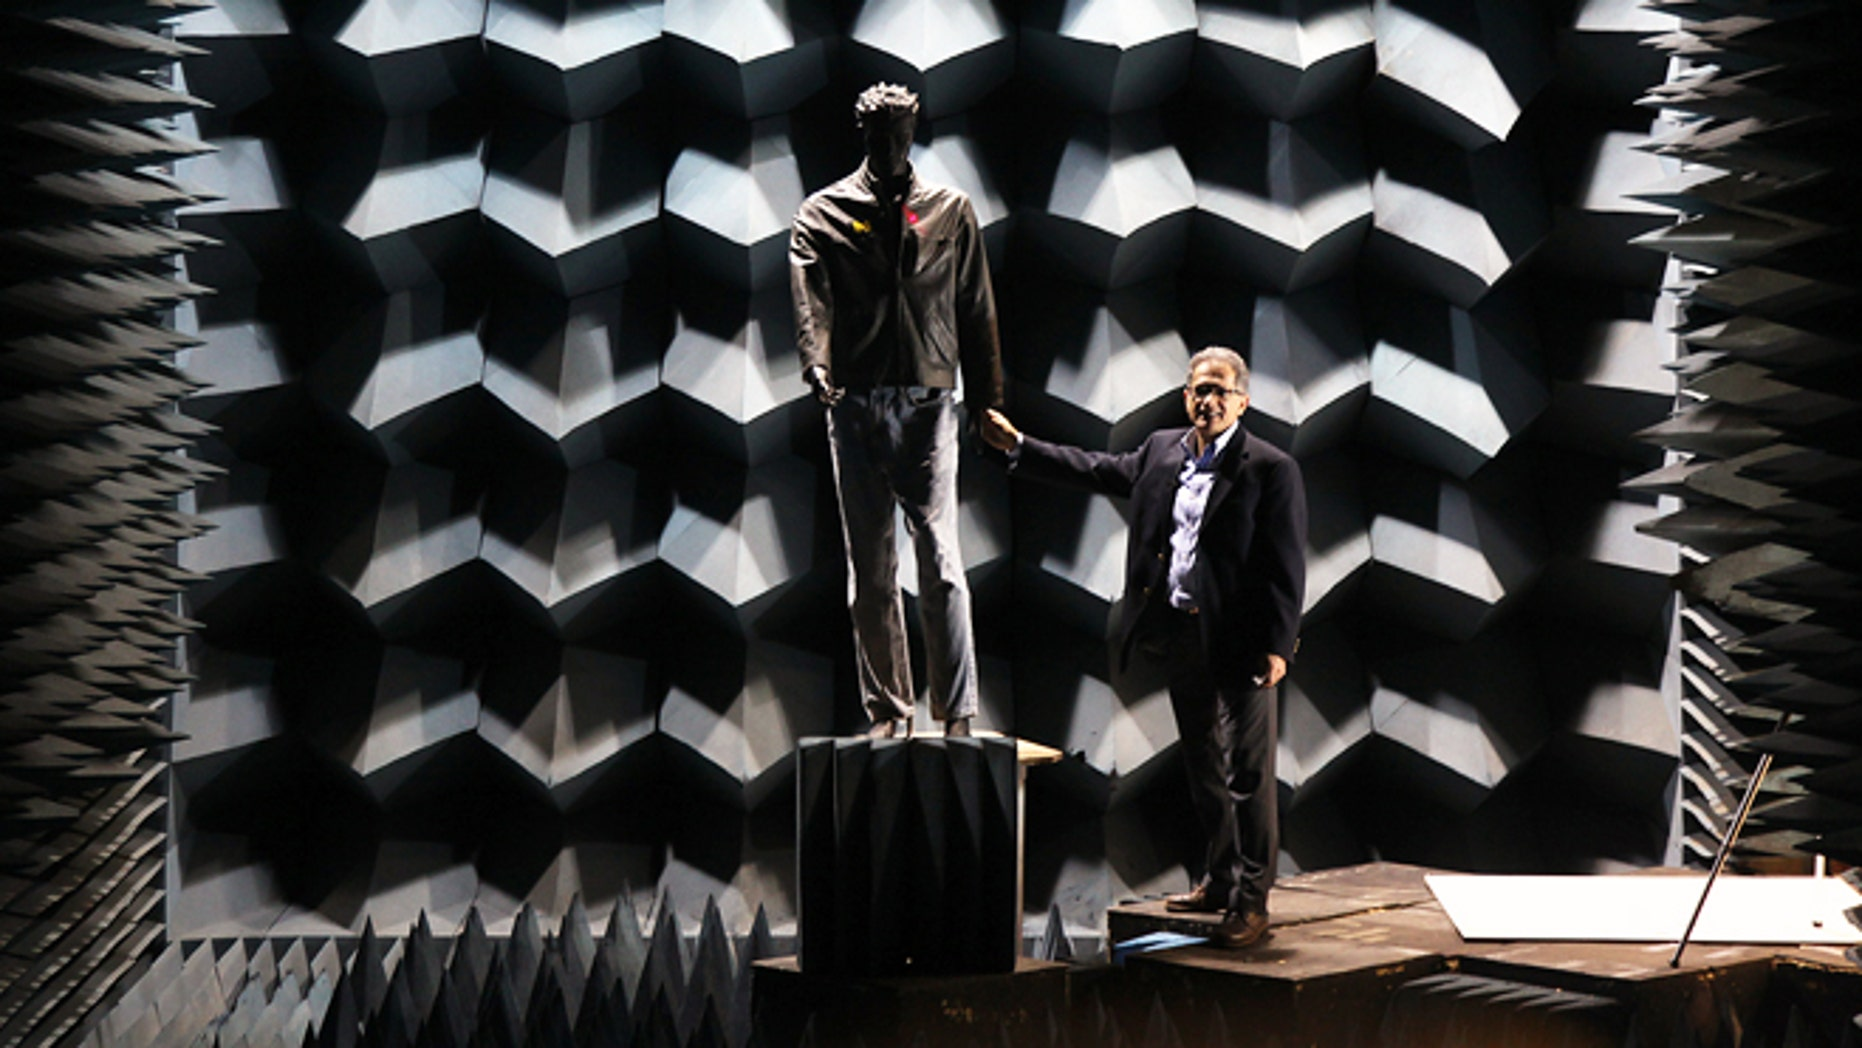 Professor Kamal Sarabandi approaches a mannequin he uses to test the radar in the anechoic chamber.In the aftermath of the Newtown school shooting, a University of Michigan, College of Engineering professor Kamal Sarabandienvisions a new use for a weapons-detecting radar system heâs been developing for thepast few years. The technology could potentially identify a hidden gun or bomb on anapproaching person from the distance of a football field away in less than a second.